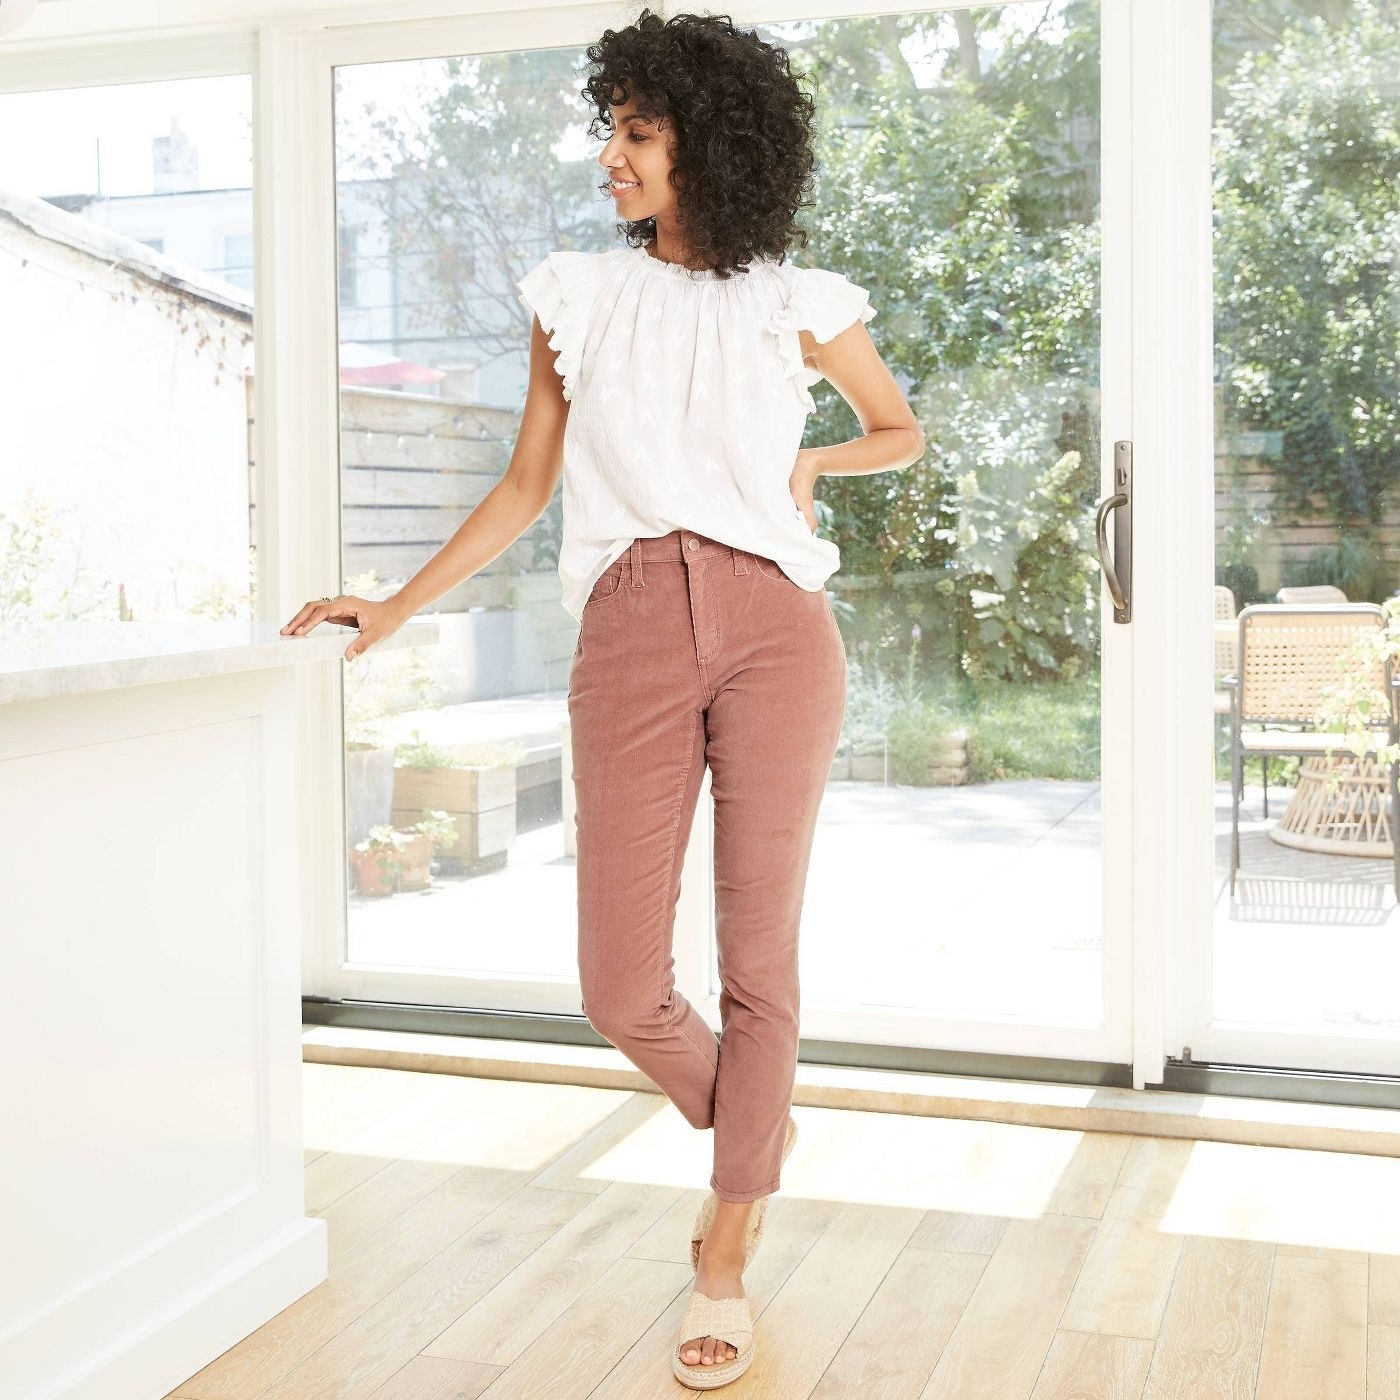 Model wearing the pink skinny jeans